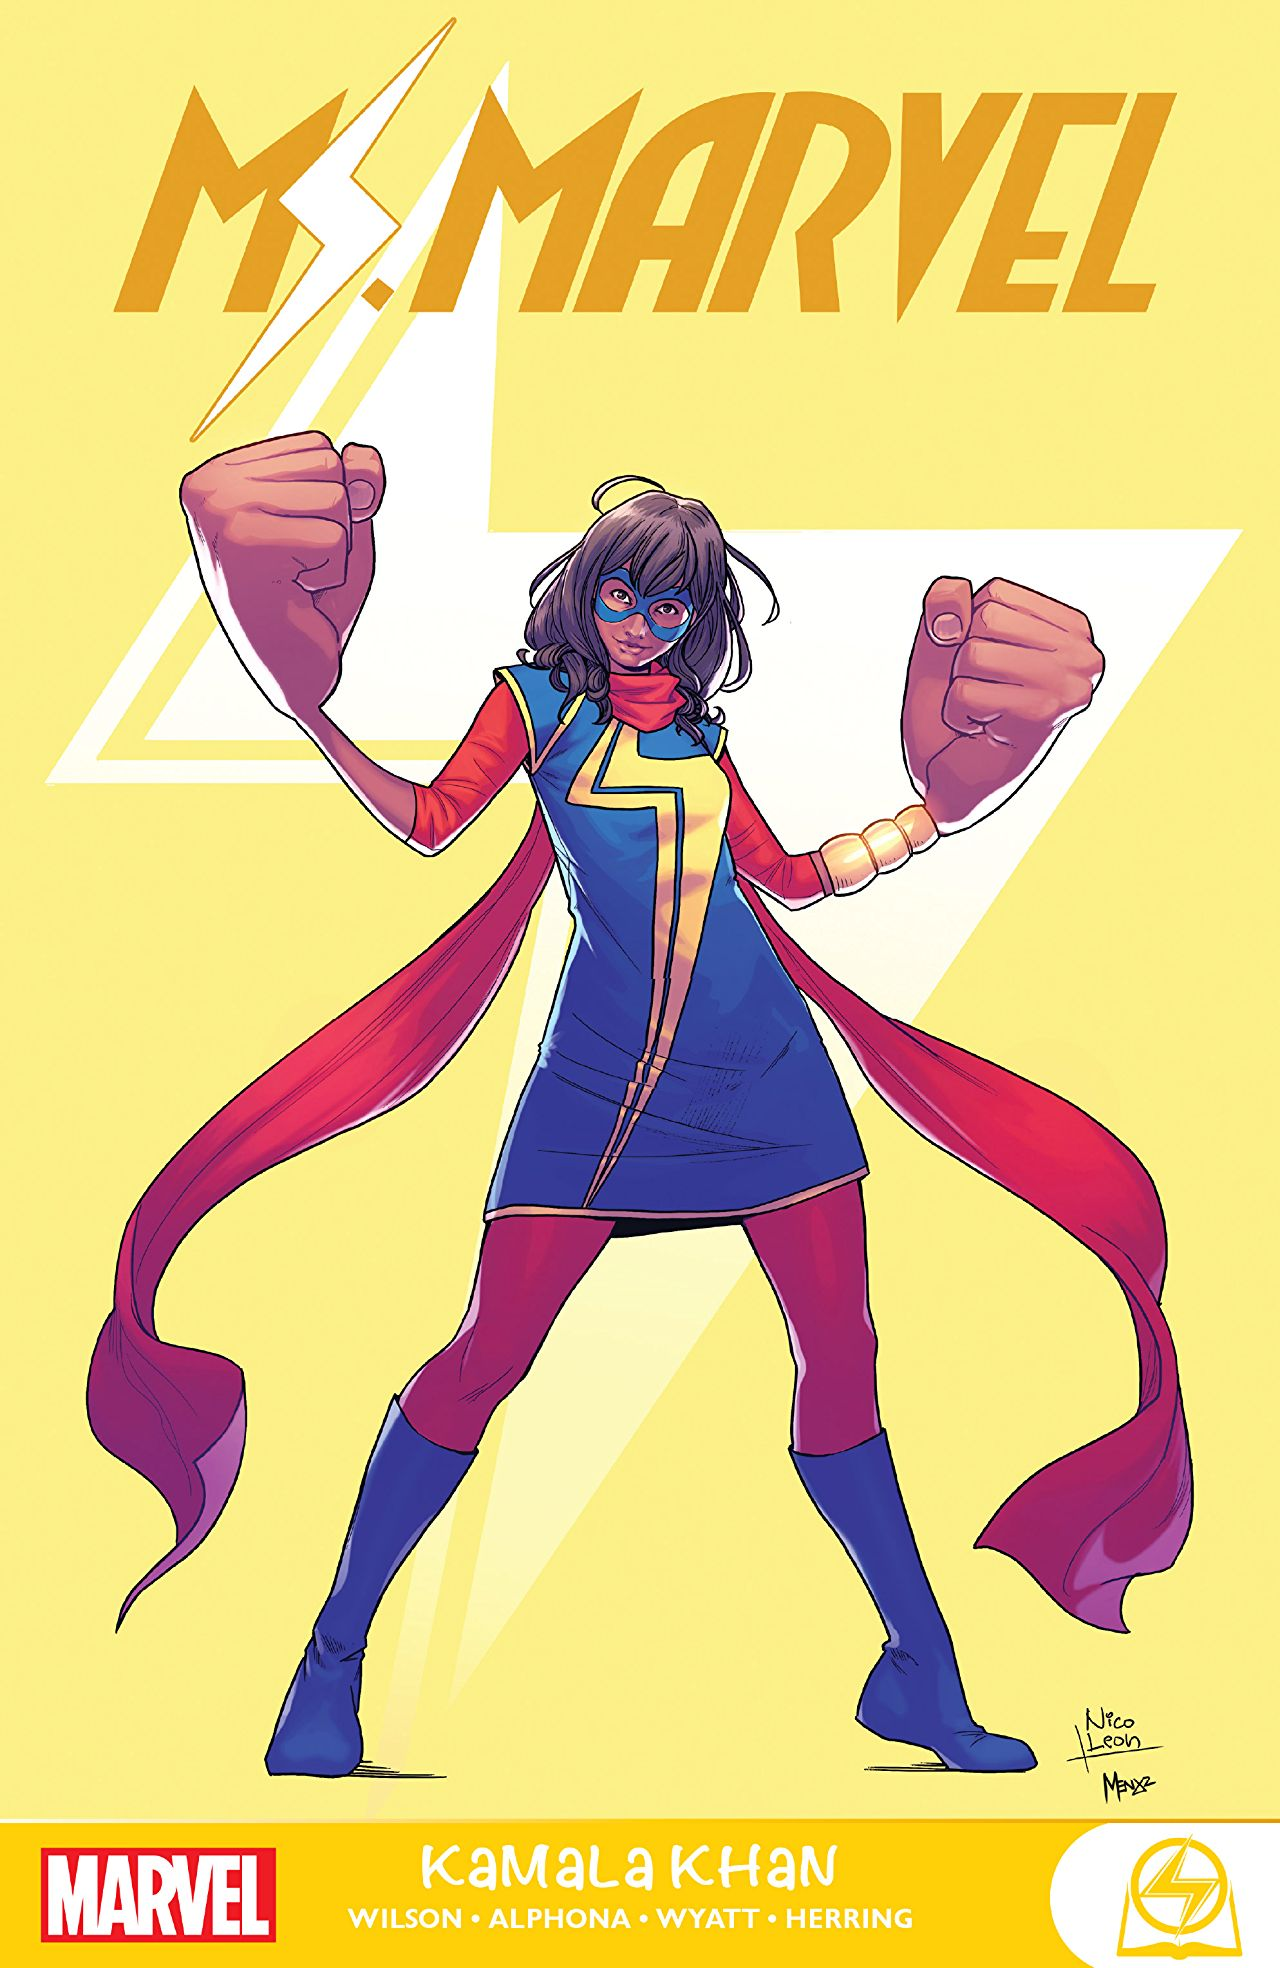 The 100 Best Comics of the Decade: Ms. Marvel